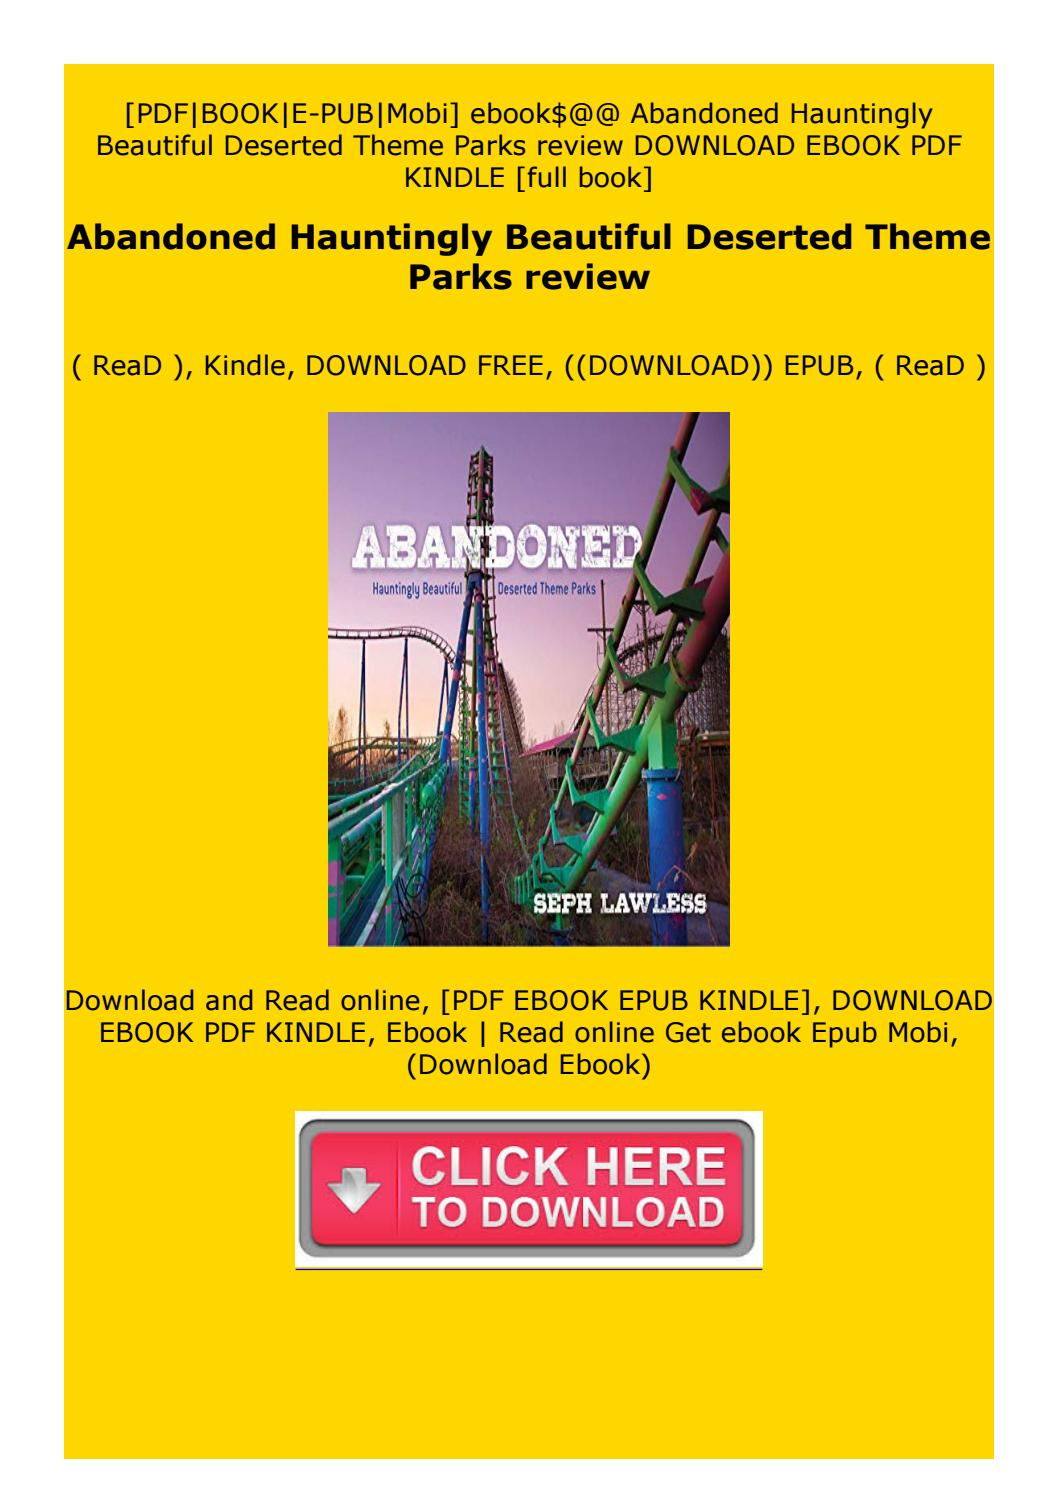 Abandoned Hauntingly Beautiful Deserted Theme Parks Review By Dsxecdvftbyg Issuu